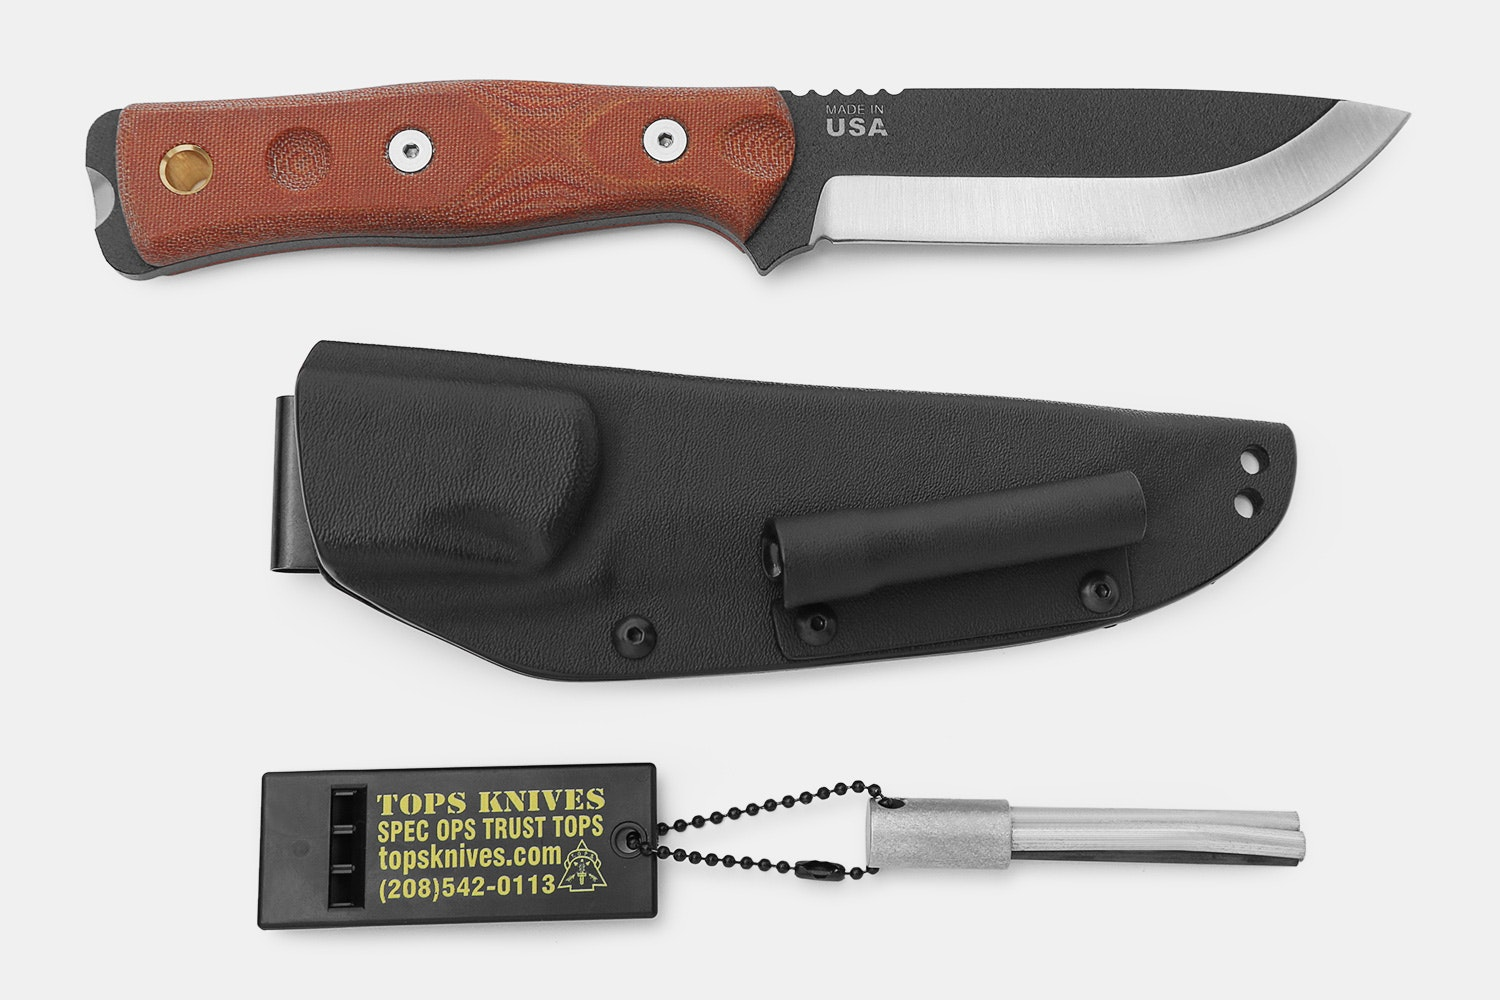 TOPS Knives B.O.B. Fieldcraft Series Knives